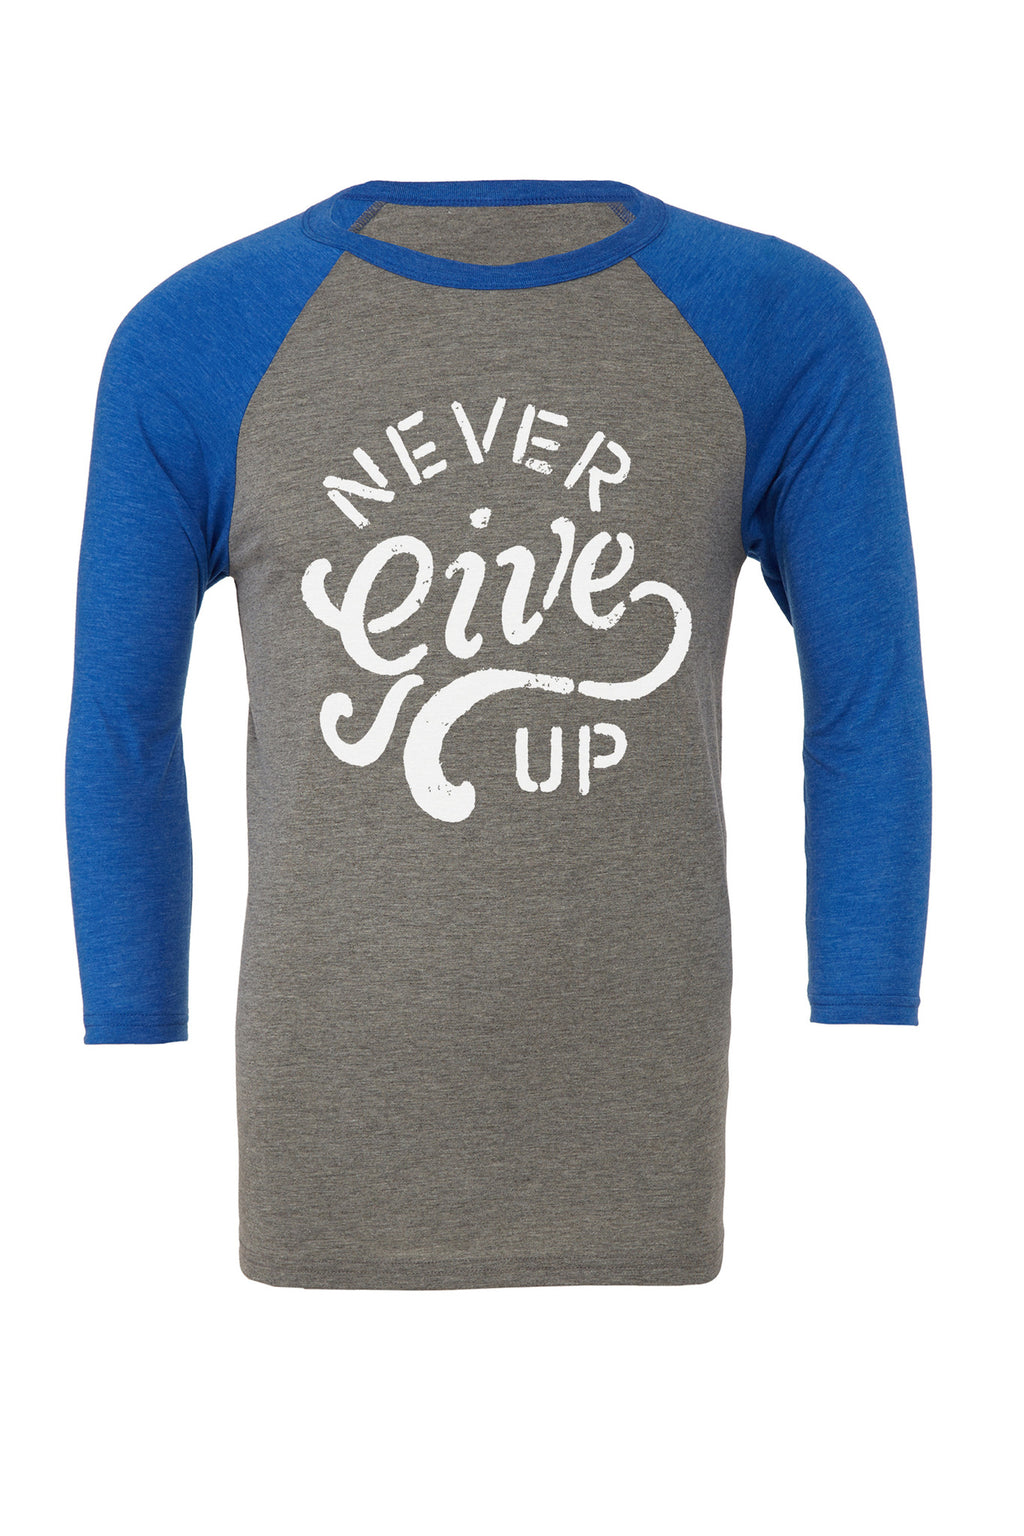 Never Give Up Baseball Blue & Grey